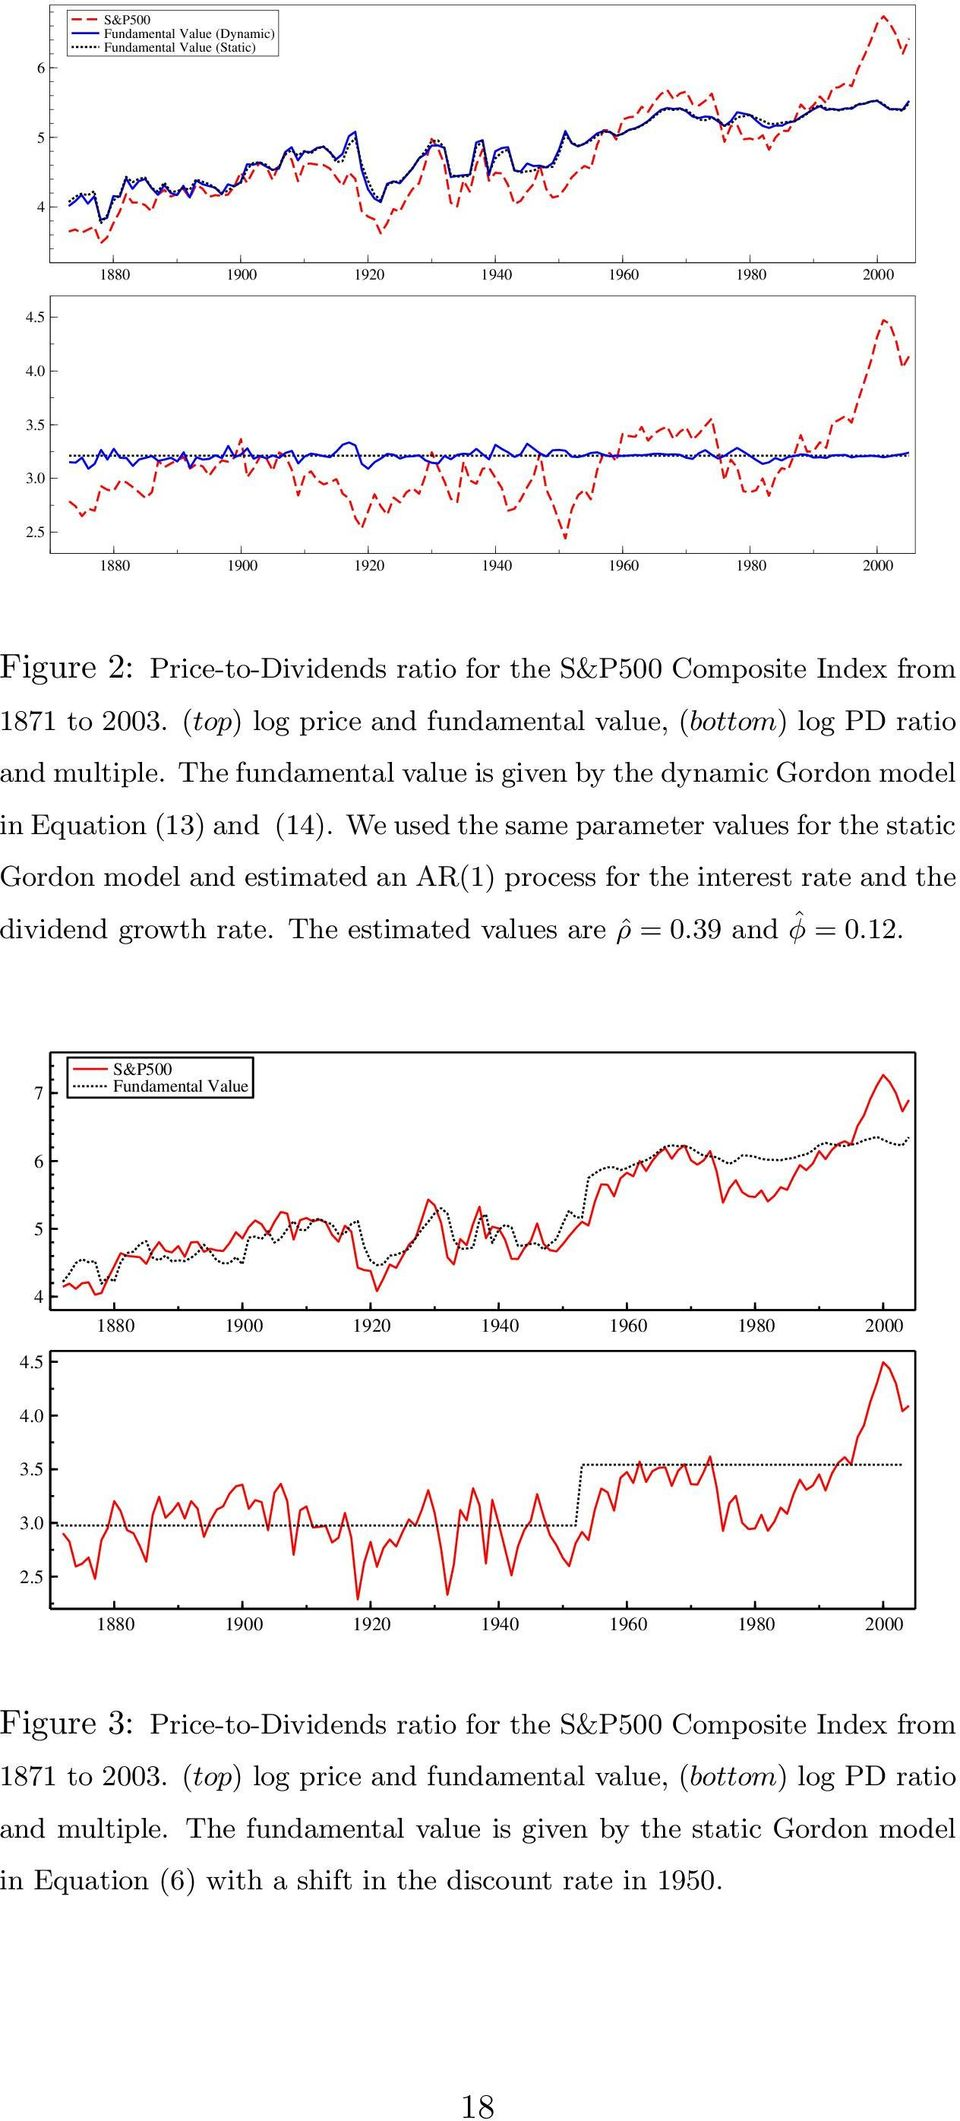 (top) log price and fundamental value, (bottom) log PD ratio and multiple. The fundamental value is given by the dynamic Gordon model in Equation (13) and (14).